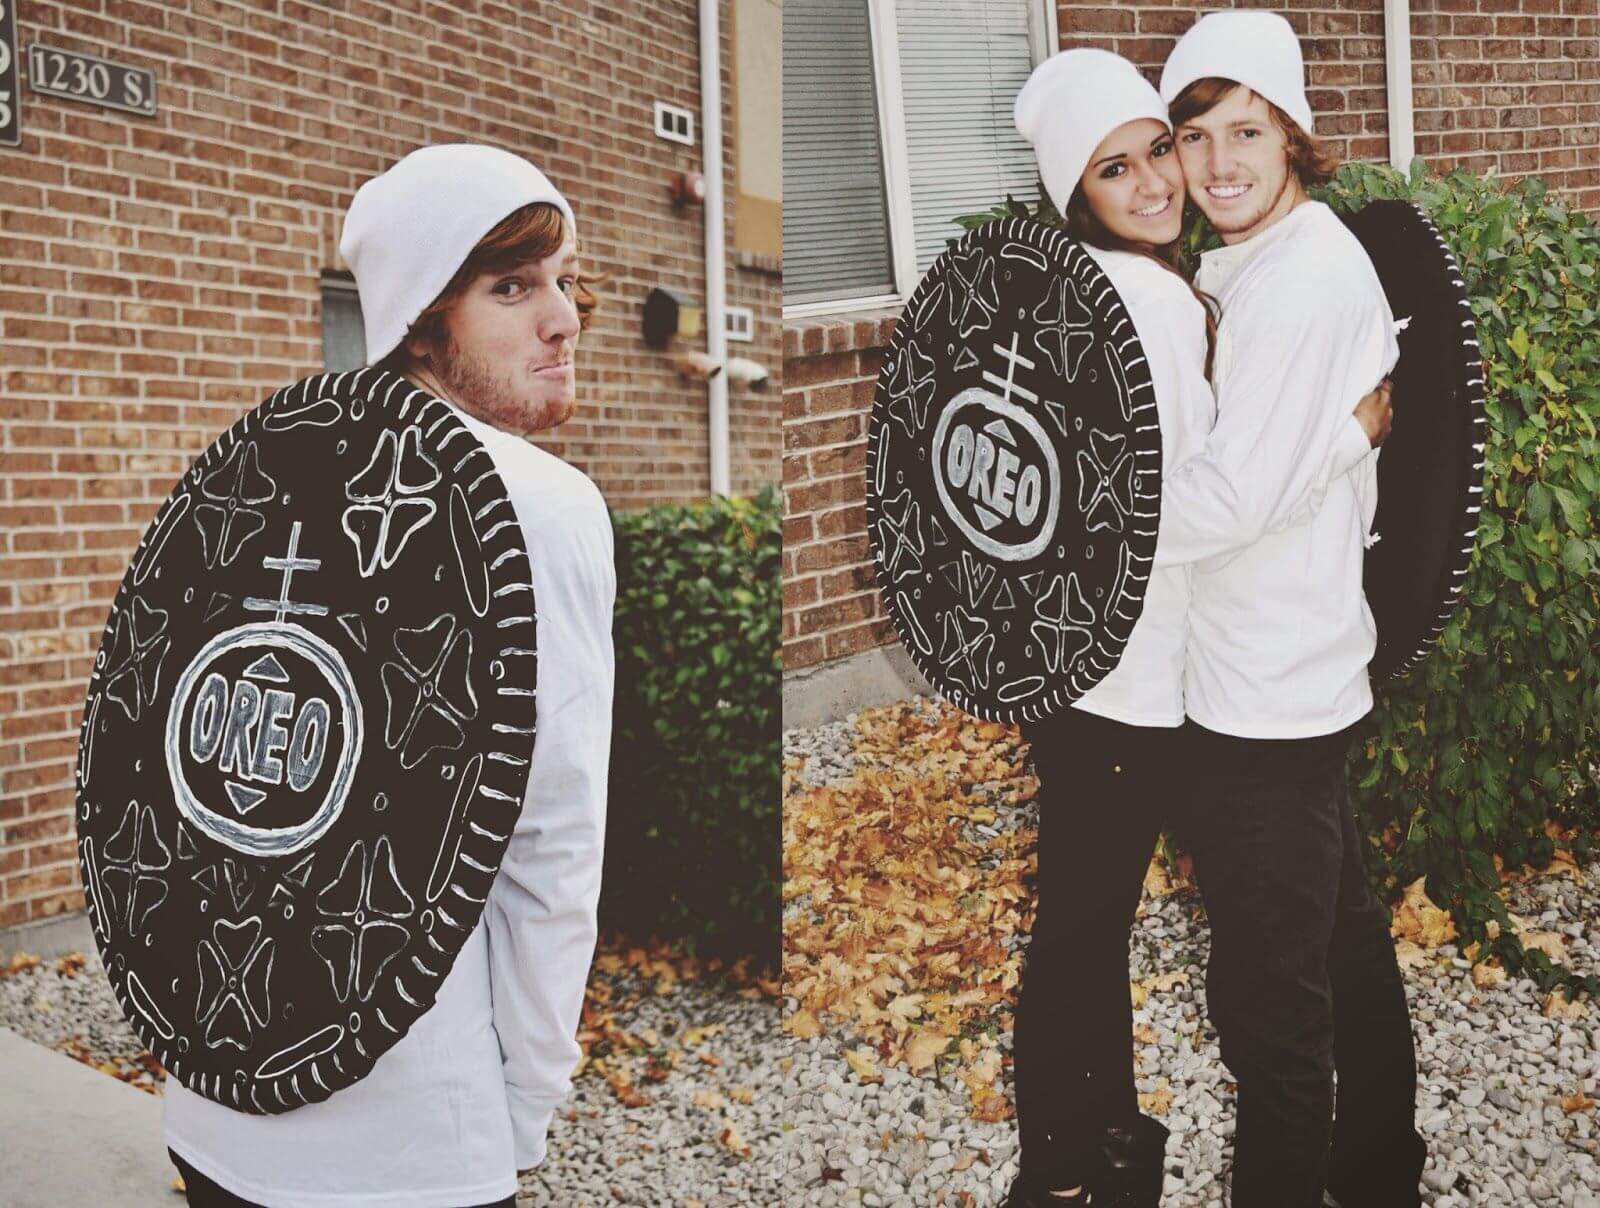 cute oreo couple funny halloween costume for couple